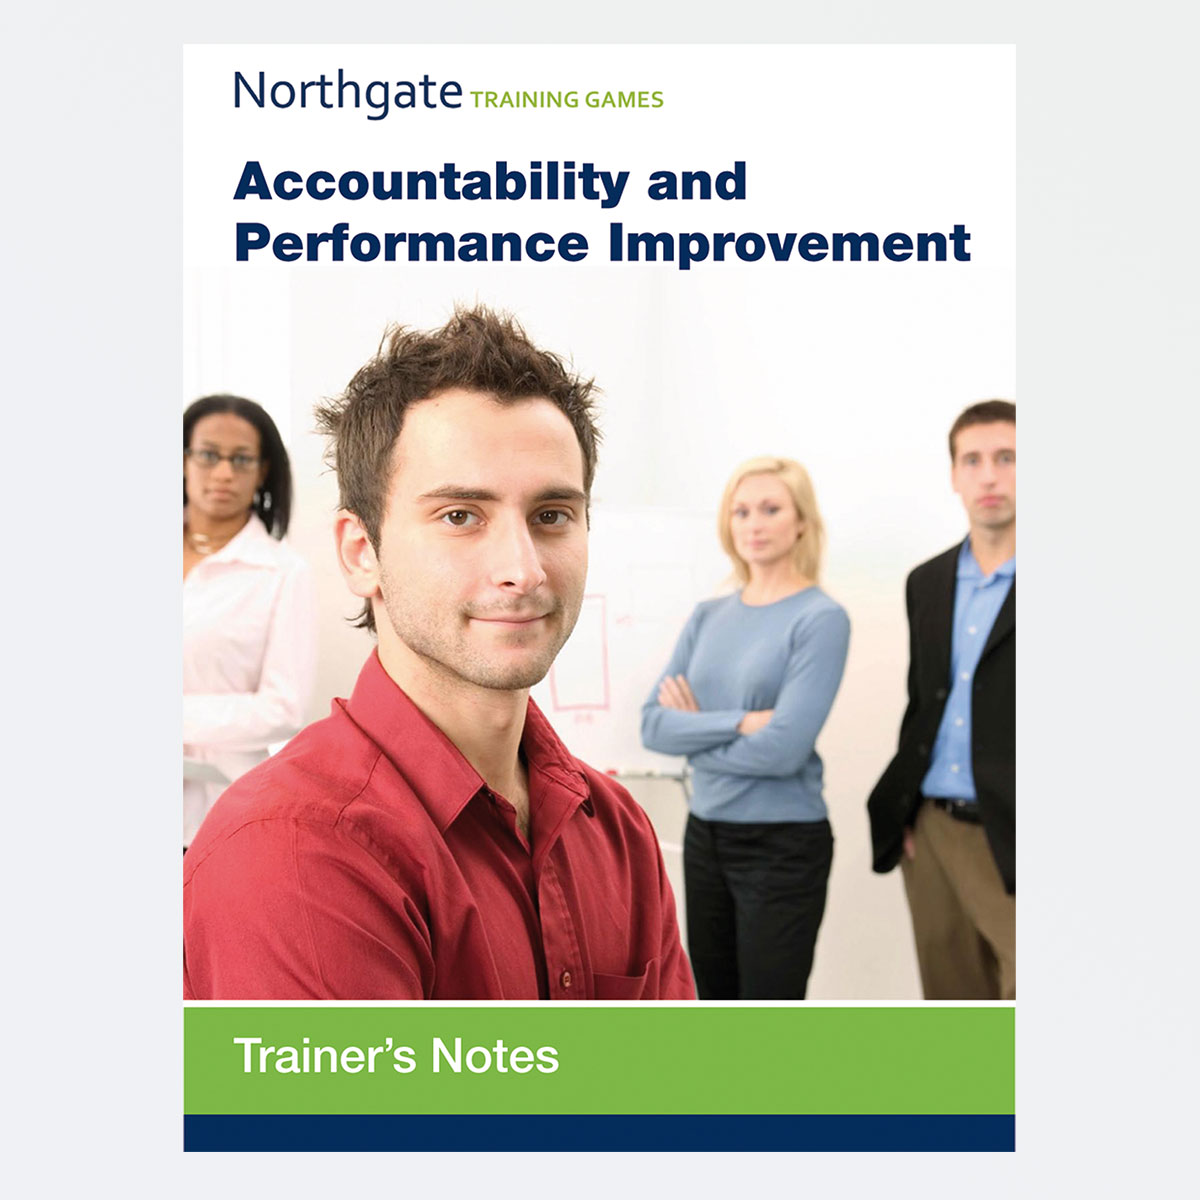 manage people performance Bsbmgt502 manage people performance assessments case study help  1 in bsbmgt502 manage people performance  manage people performance assessments case.